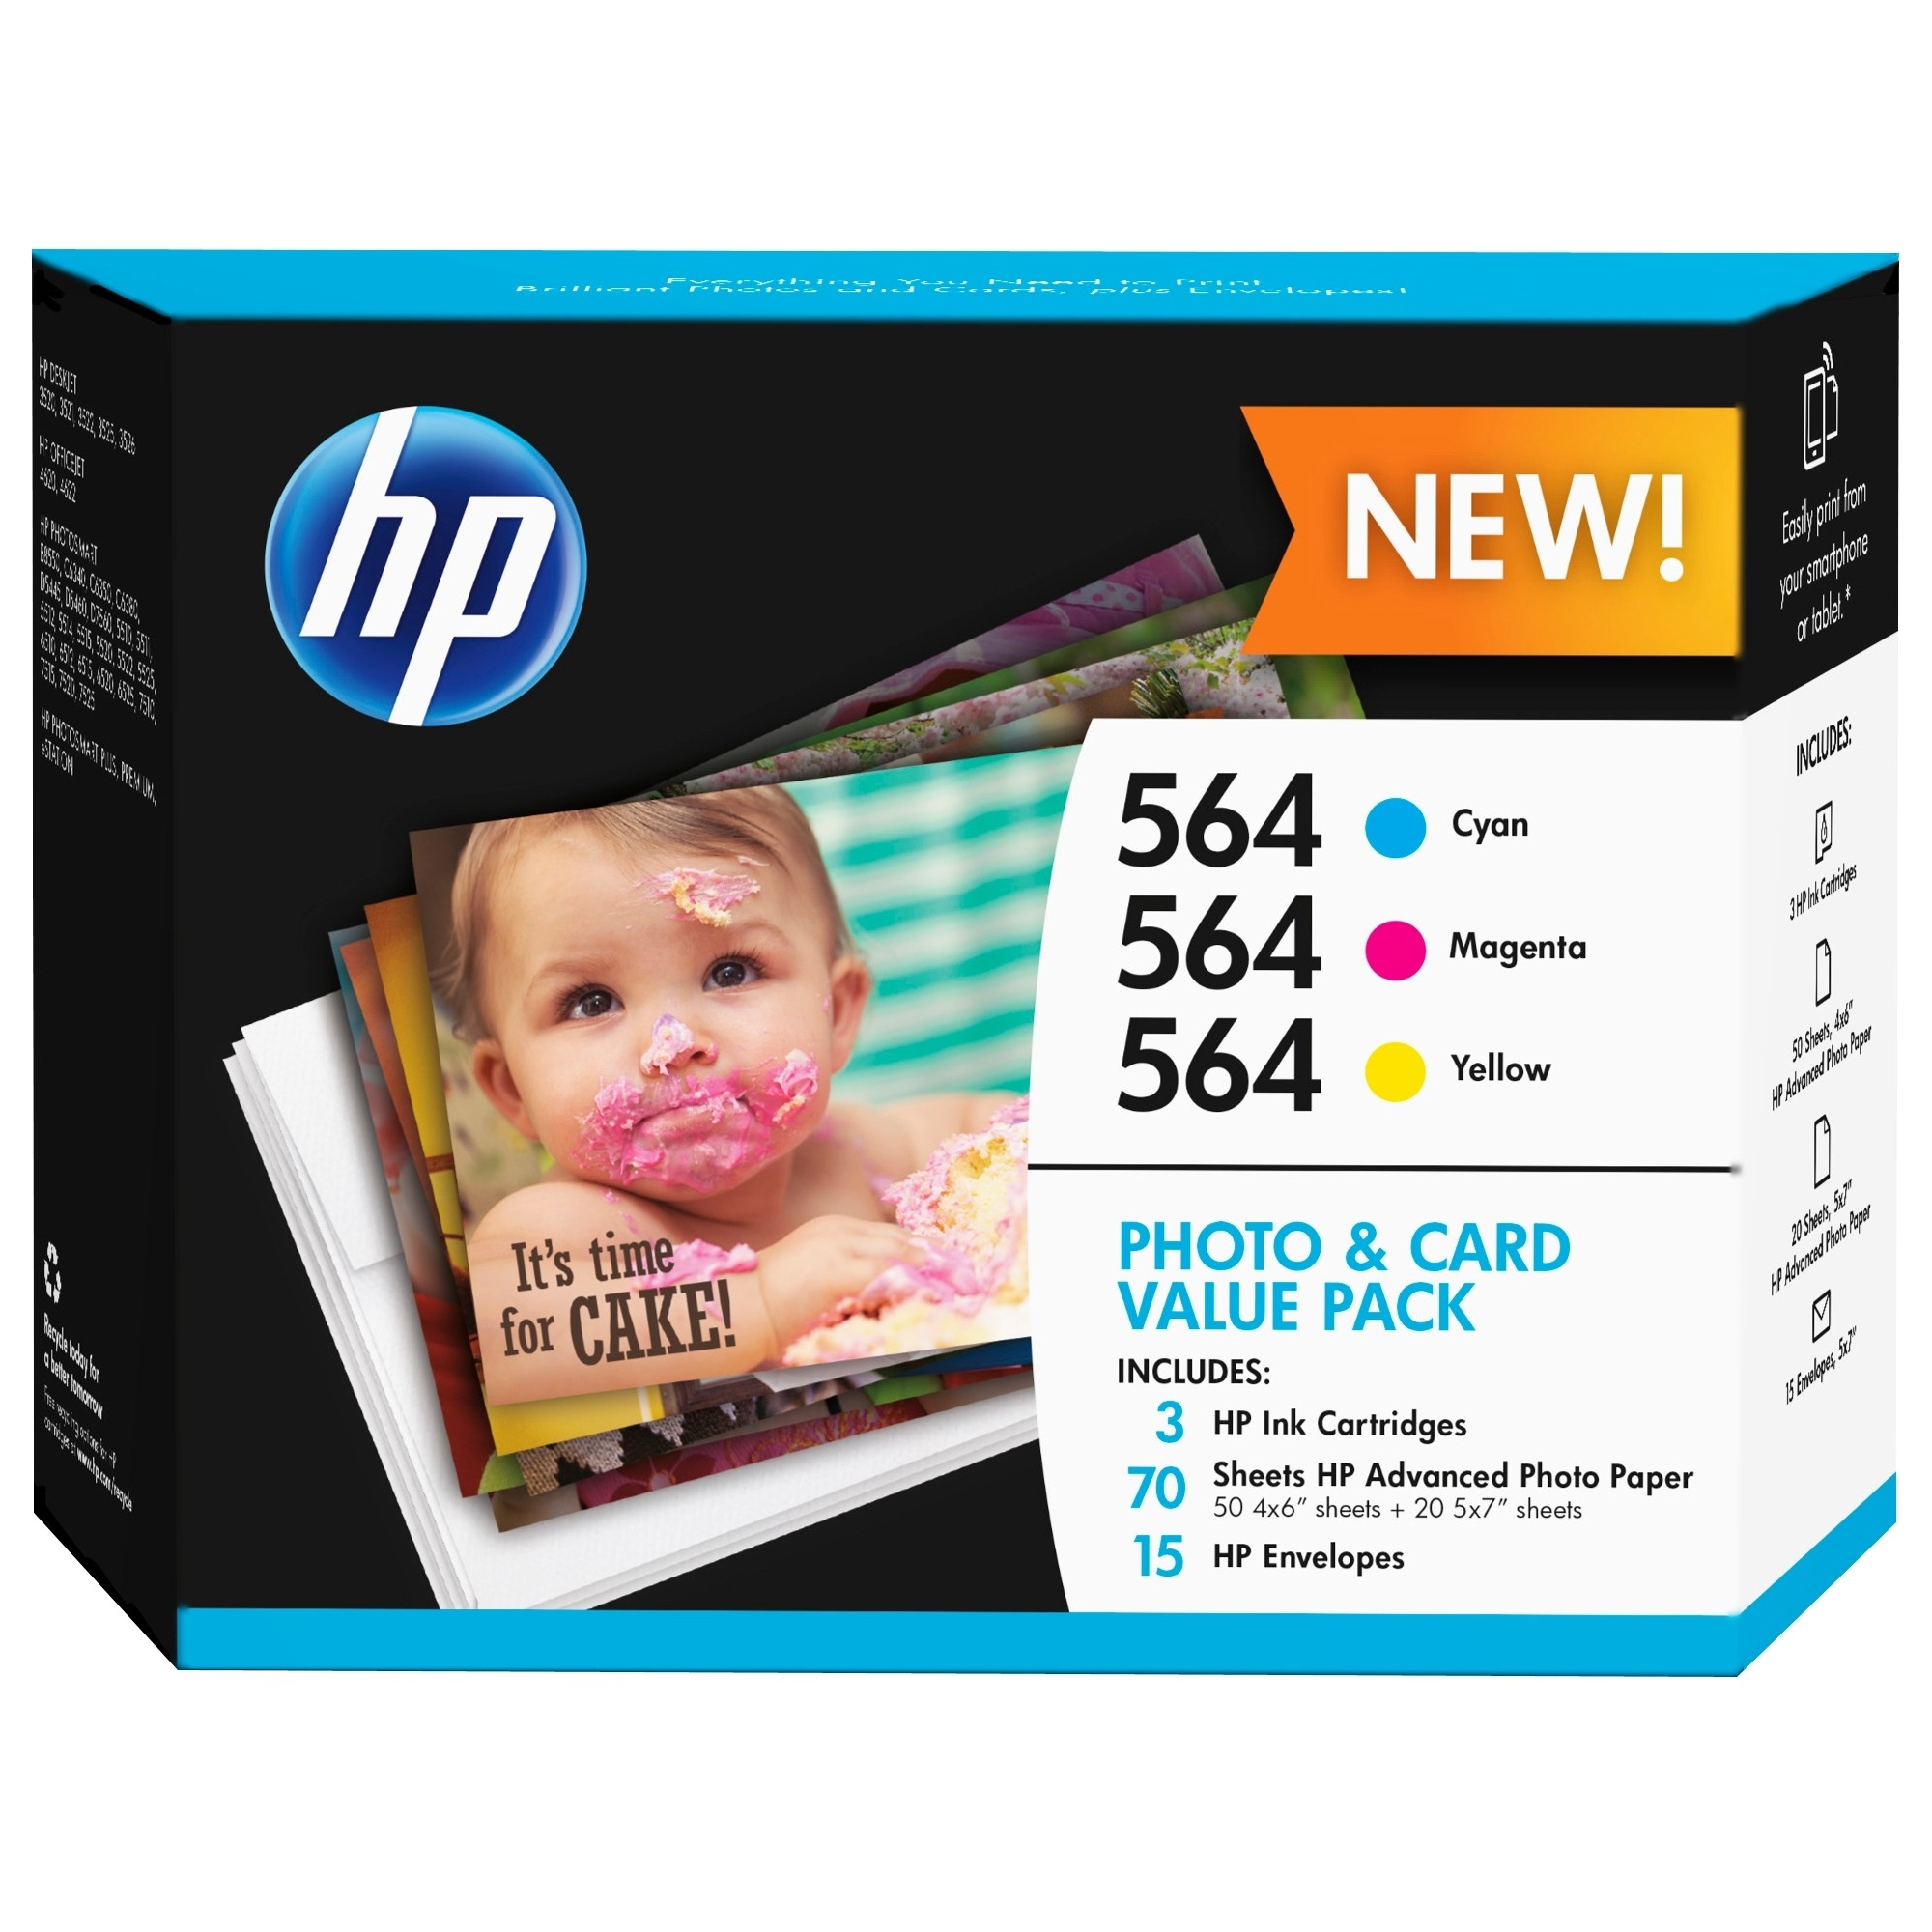 8 UNITS 564 PHOTO AND CARD VALUE PACK